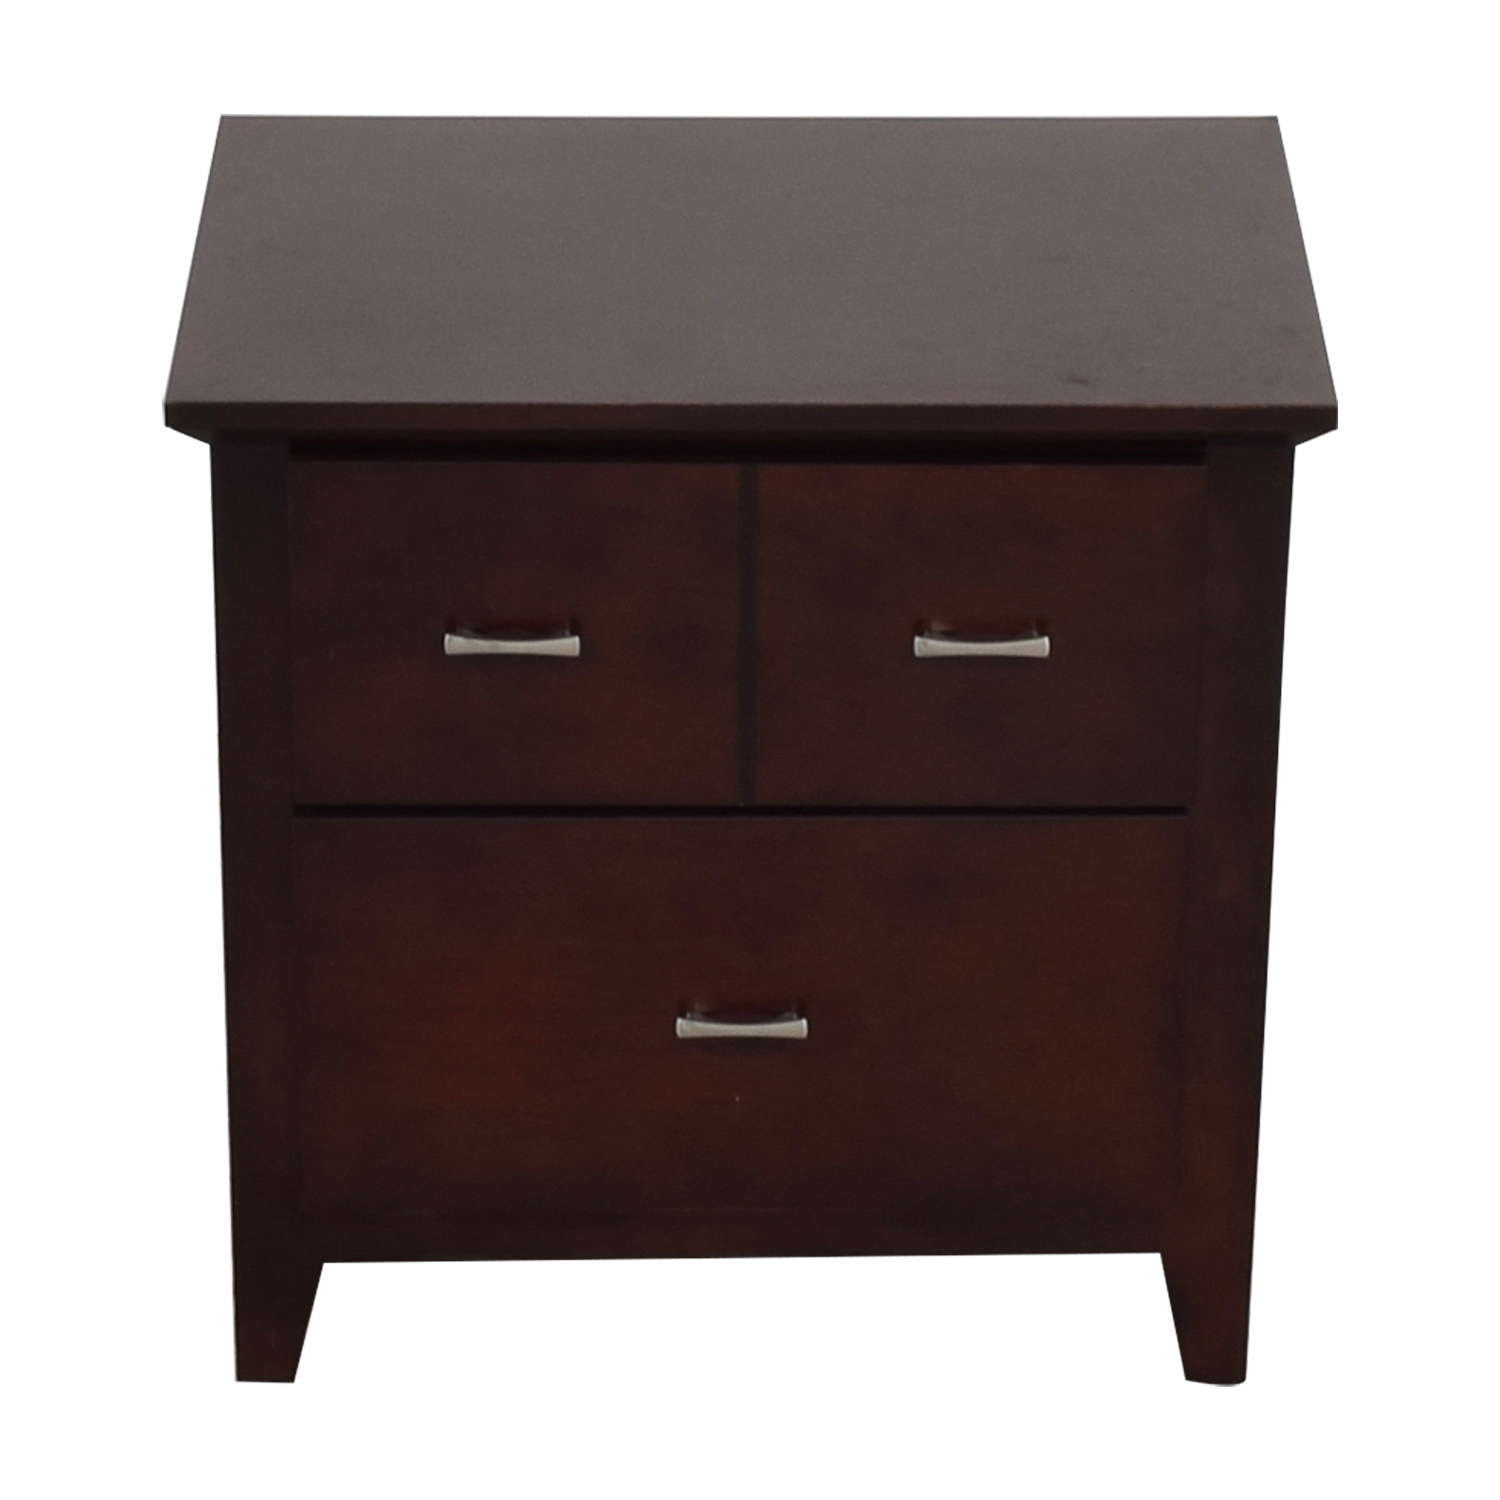 Wood Two-Drawer End Table Cherry